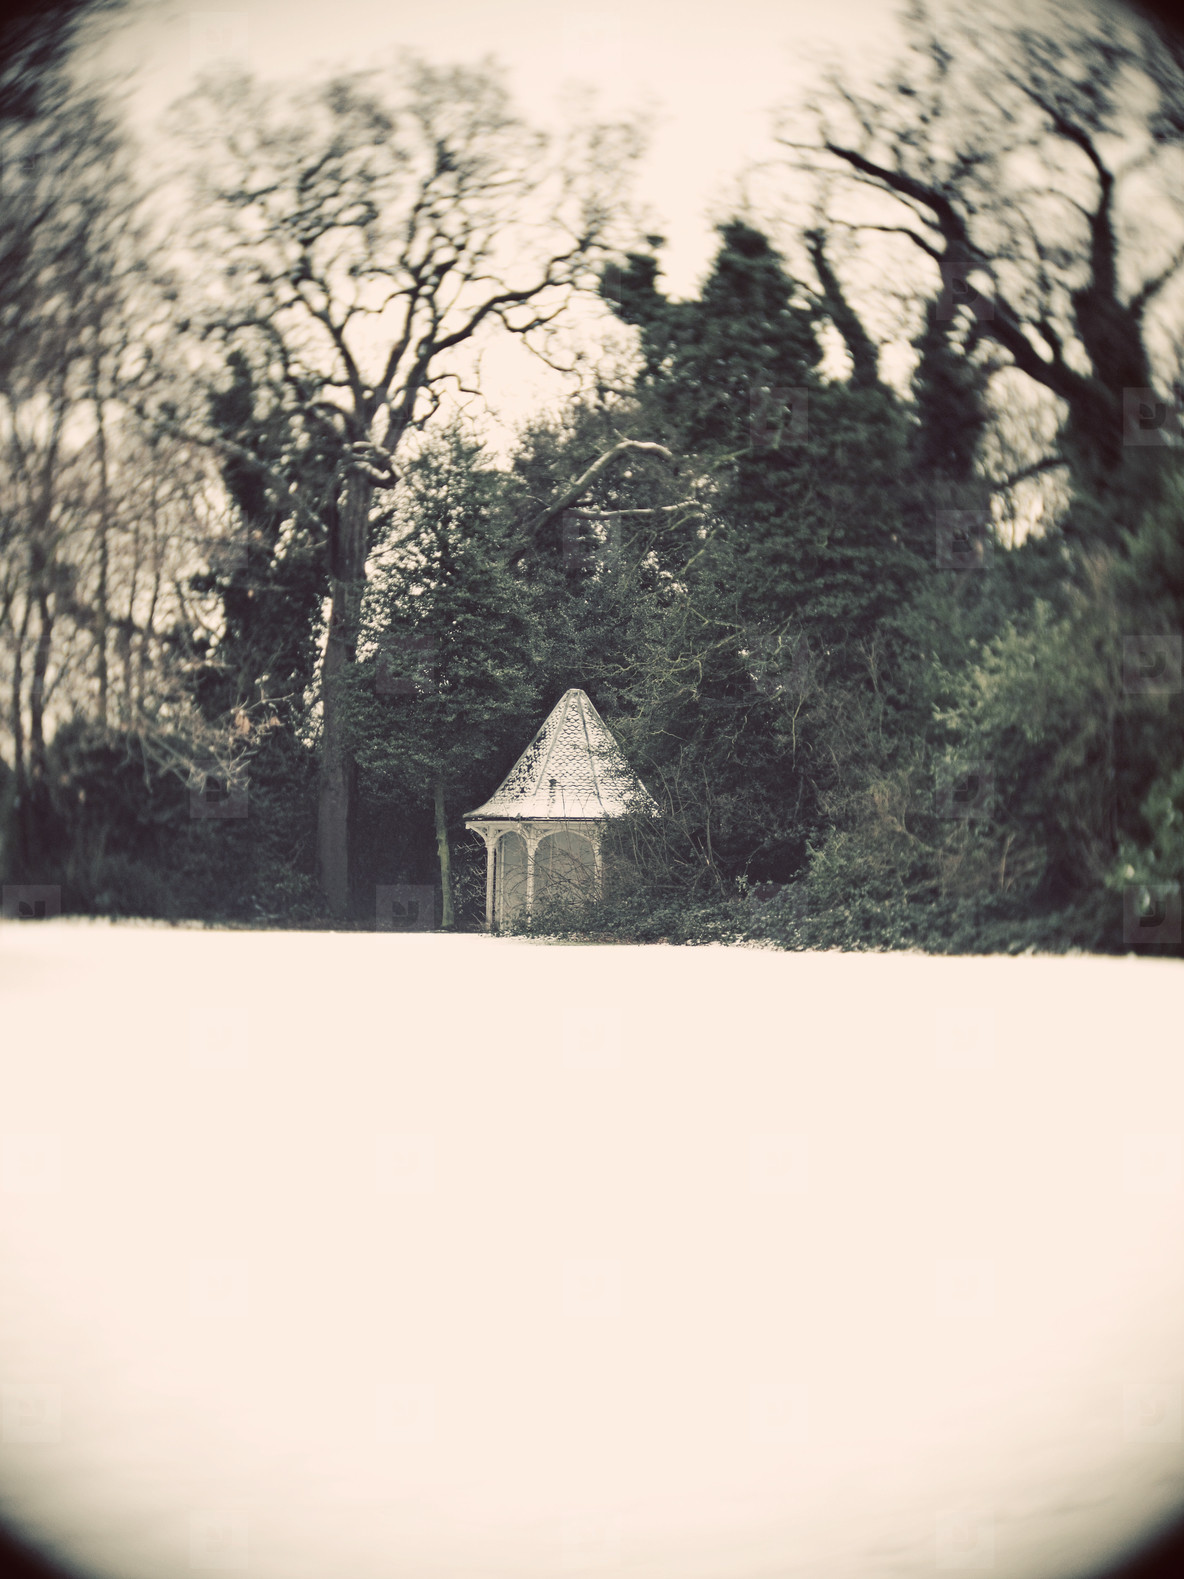 hut in the snow